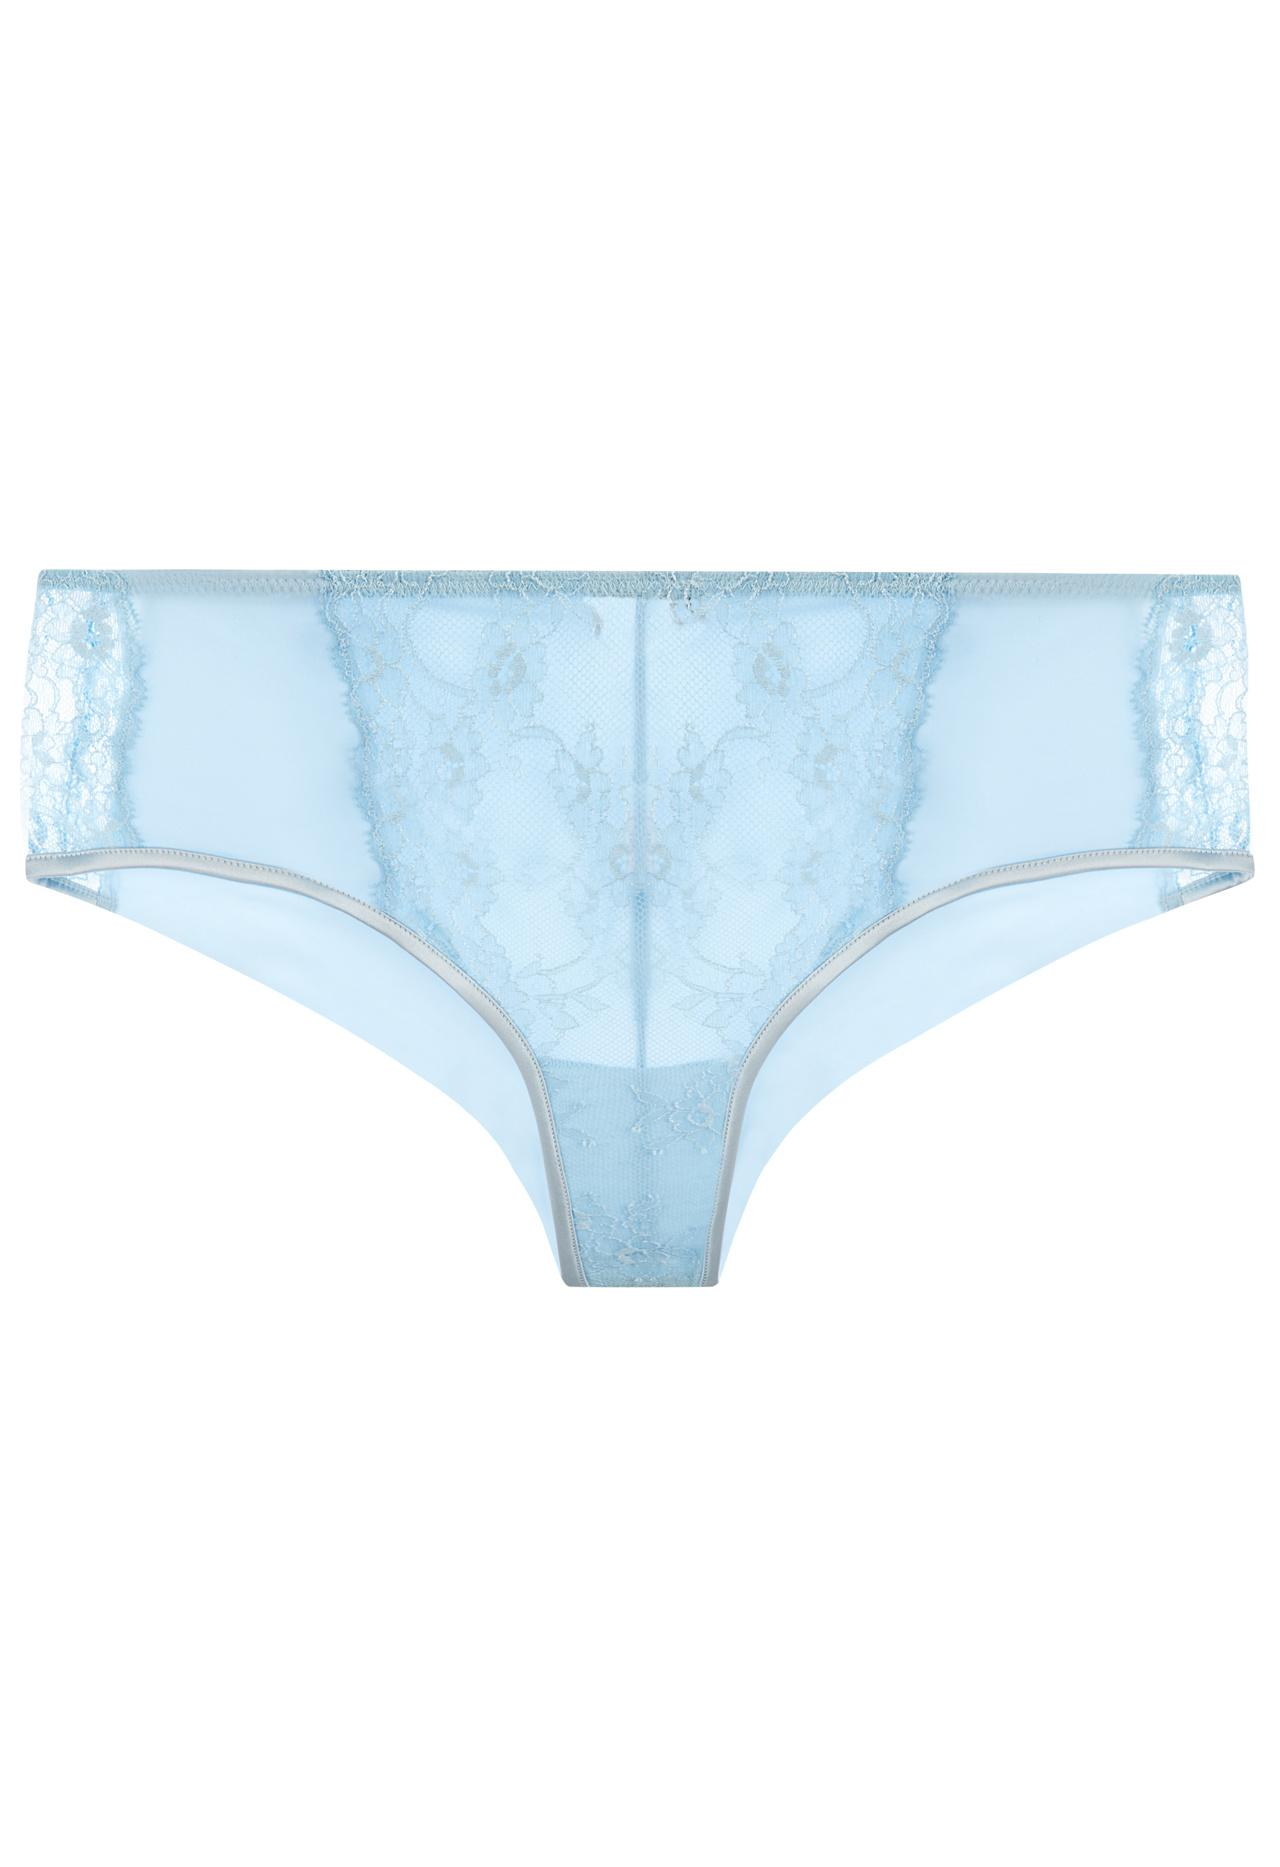 066dce6626 La Perla. Women s Blue Shorts In Leavers Lace